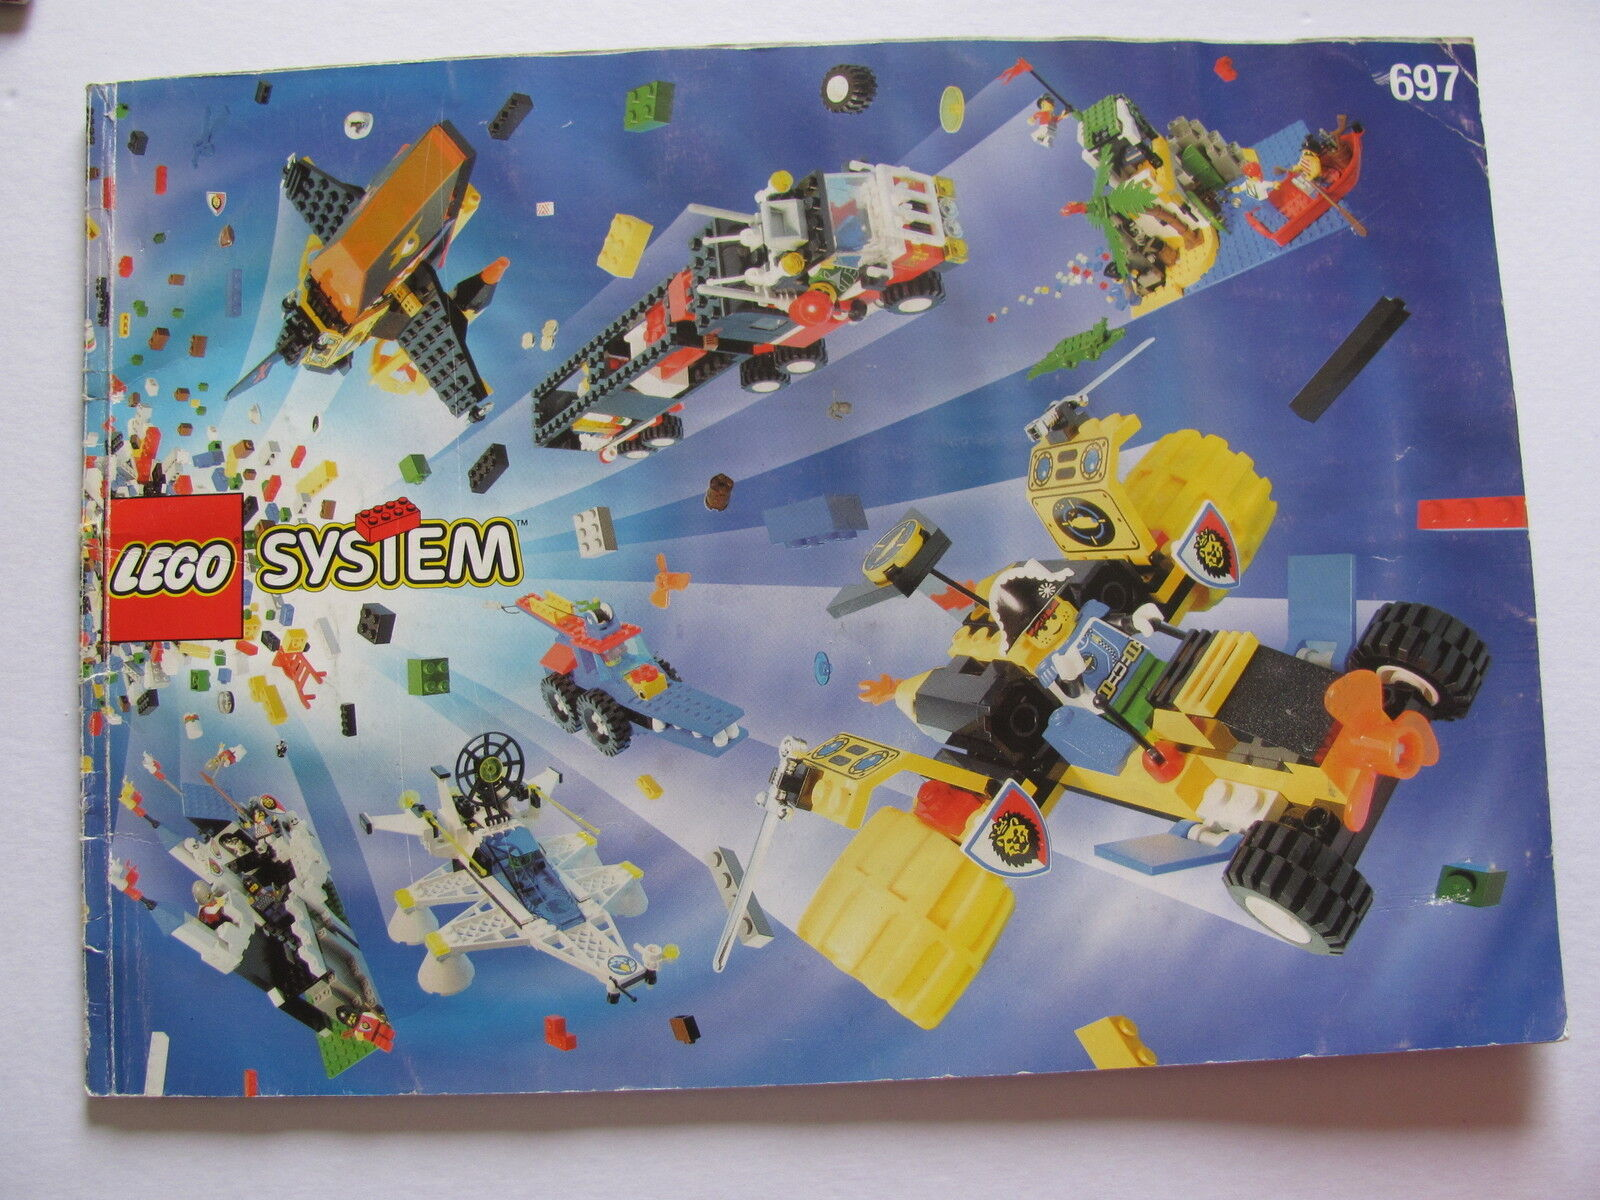 LEGO 697 @@  NOTICE   INSTRUCTIONS BOOKLET  @@  BAUANLEITUNG 6d450a